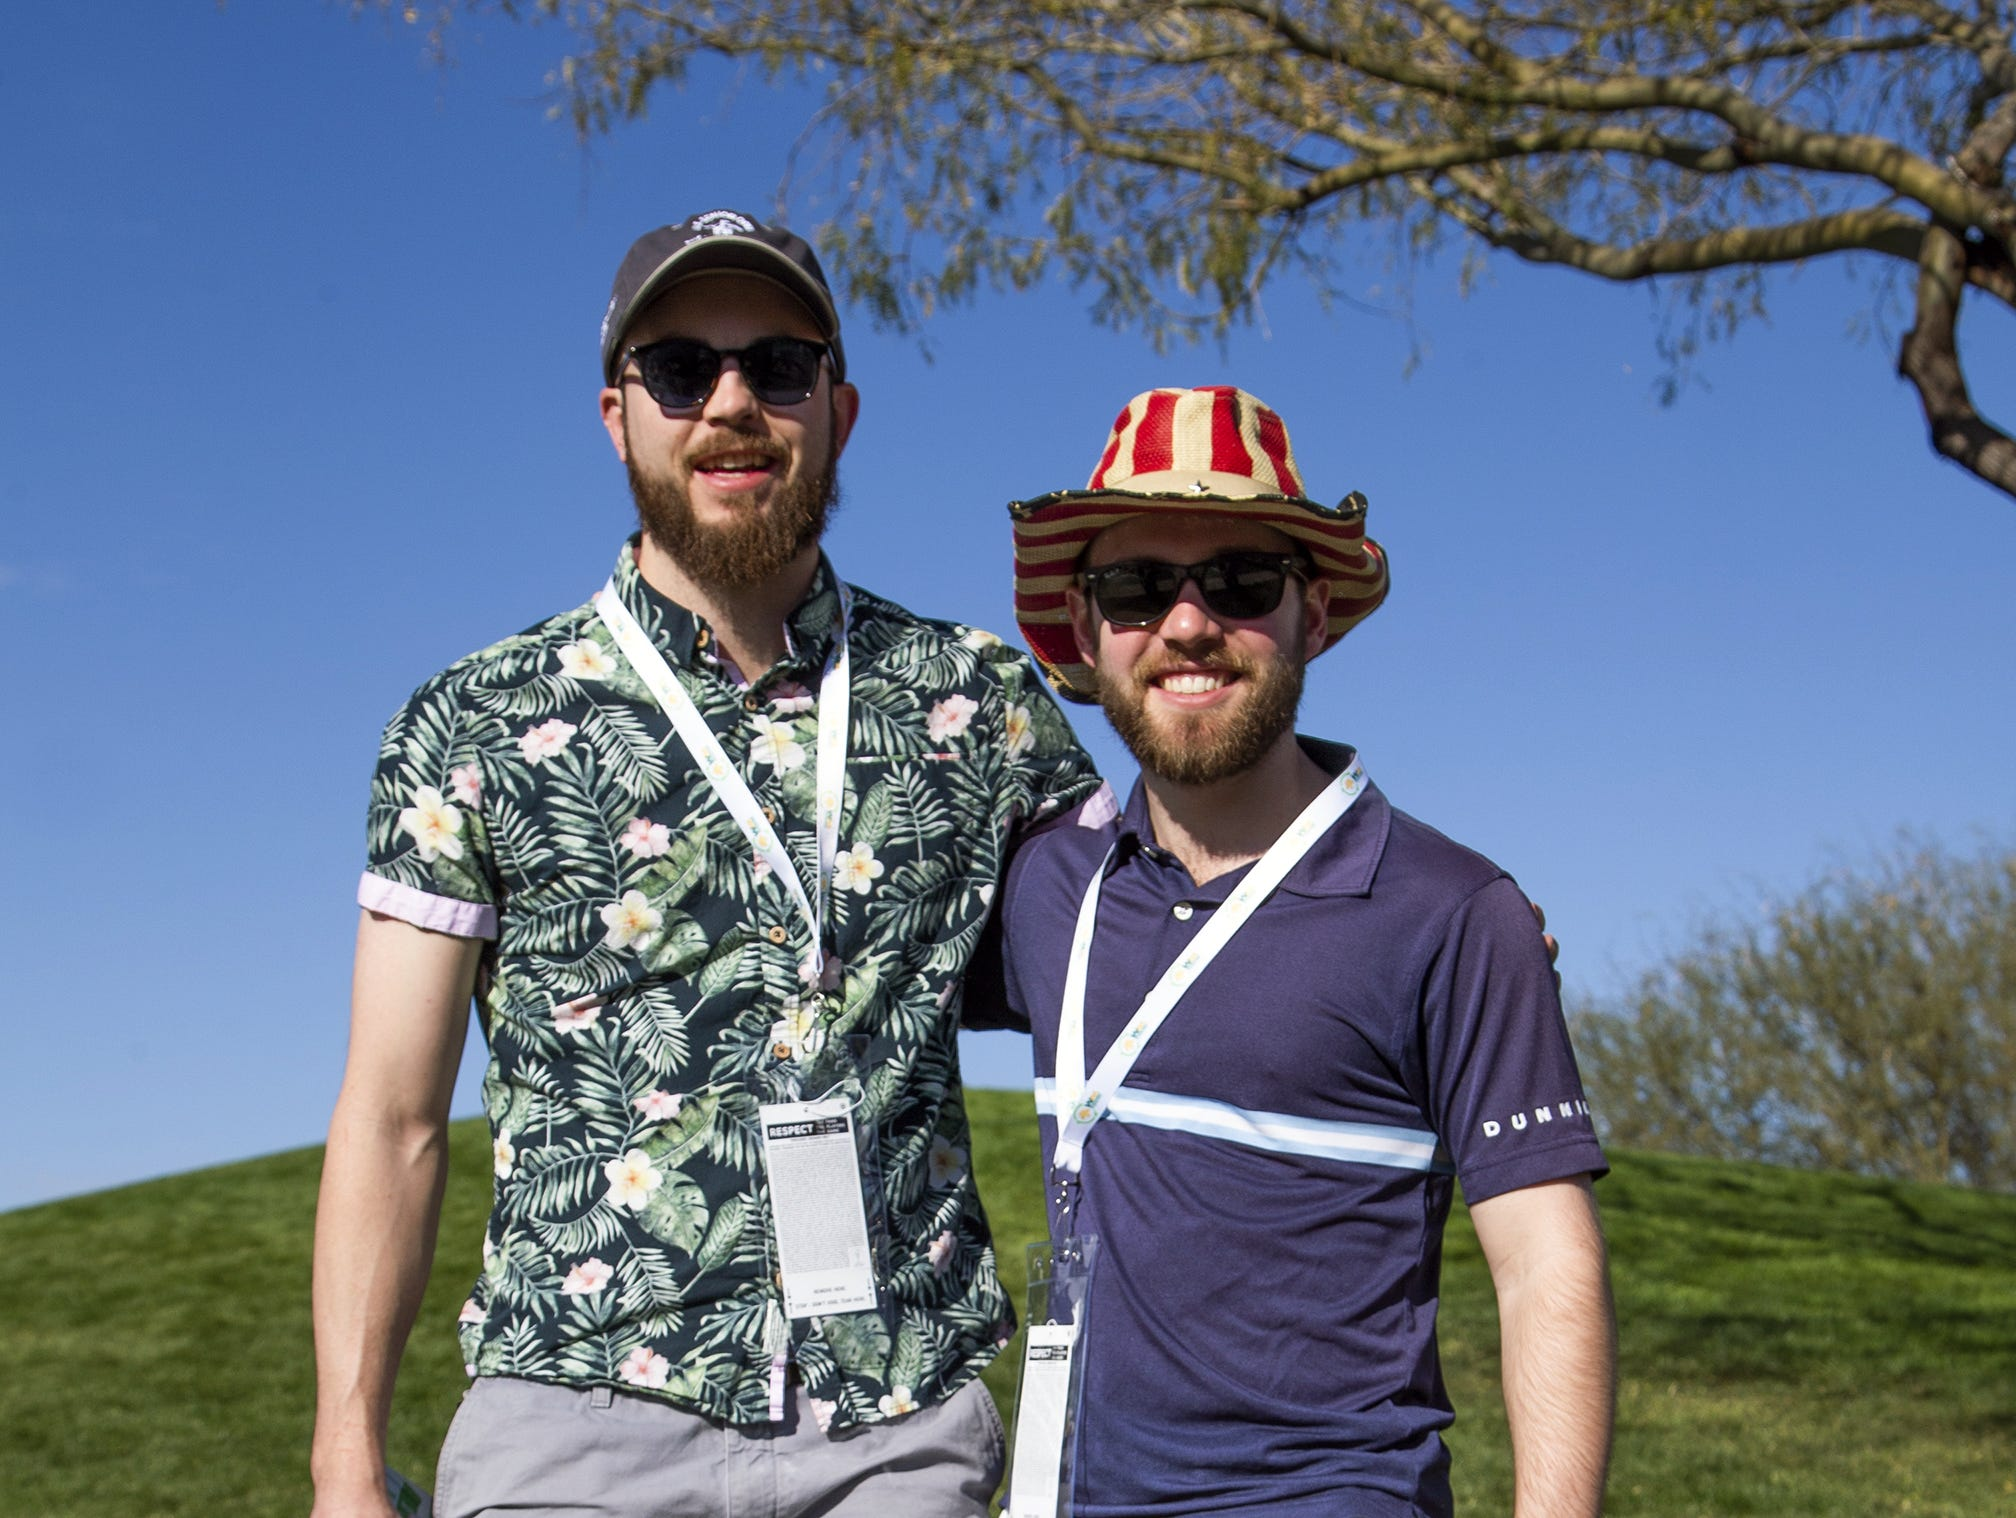 Friends Grant Brown, 26, left, Scottsdale and Ty Frost, 26, Chicago, dressed up for the second round of the Waste Management Phoenix Open at the TPC Scottsdale, Friday, February 1, 2019.